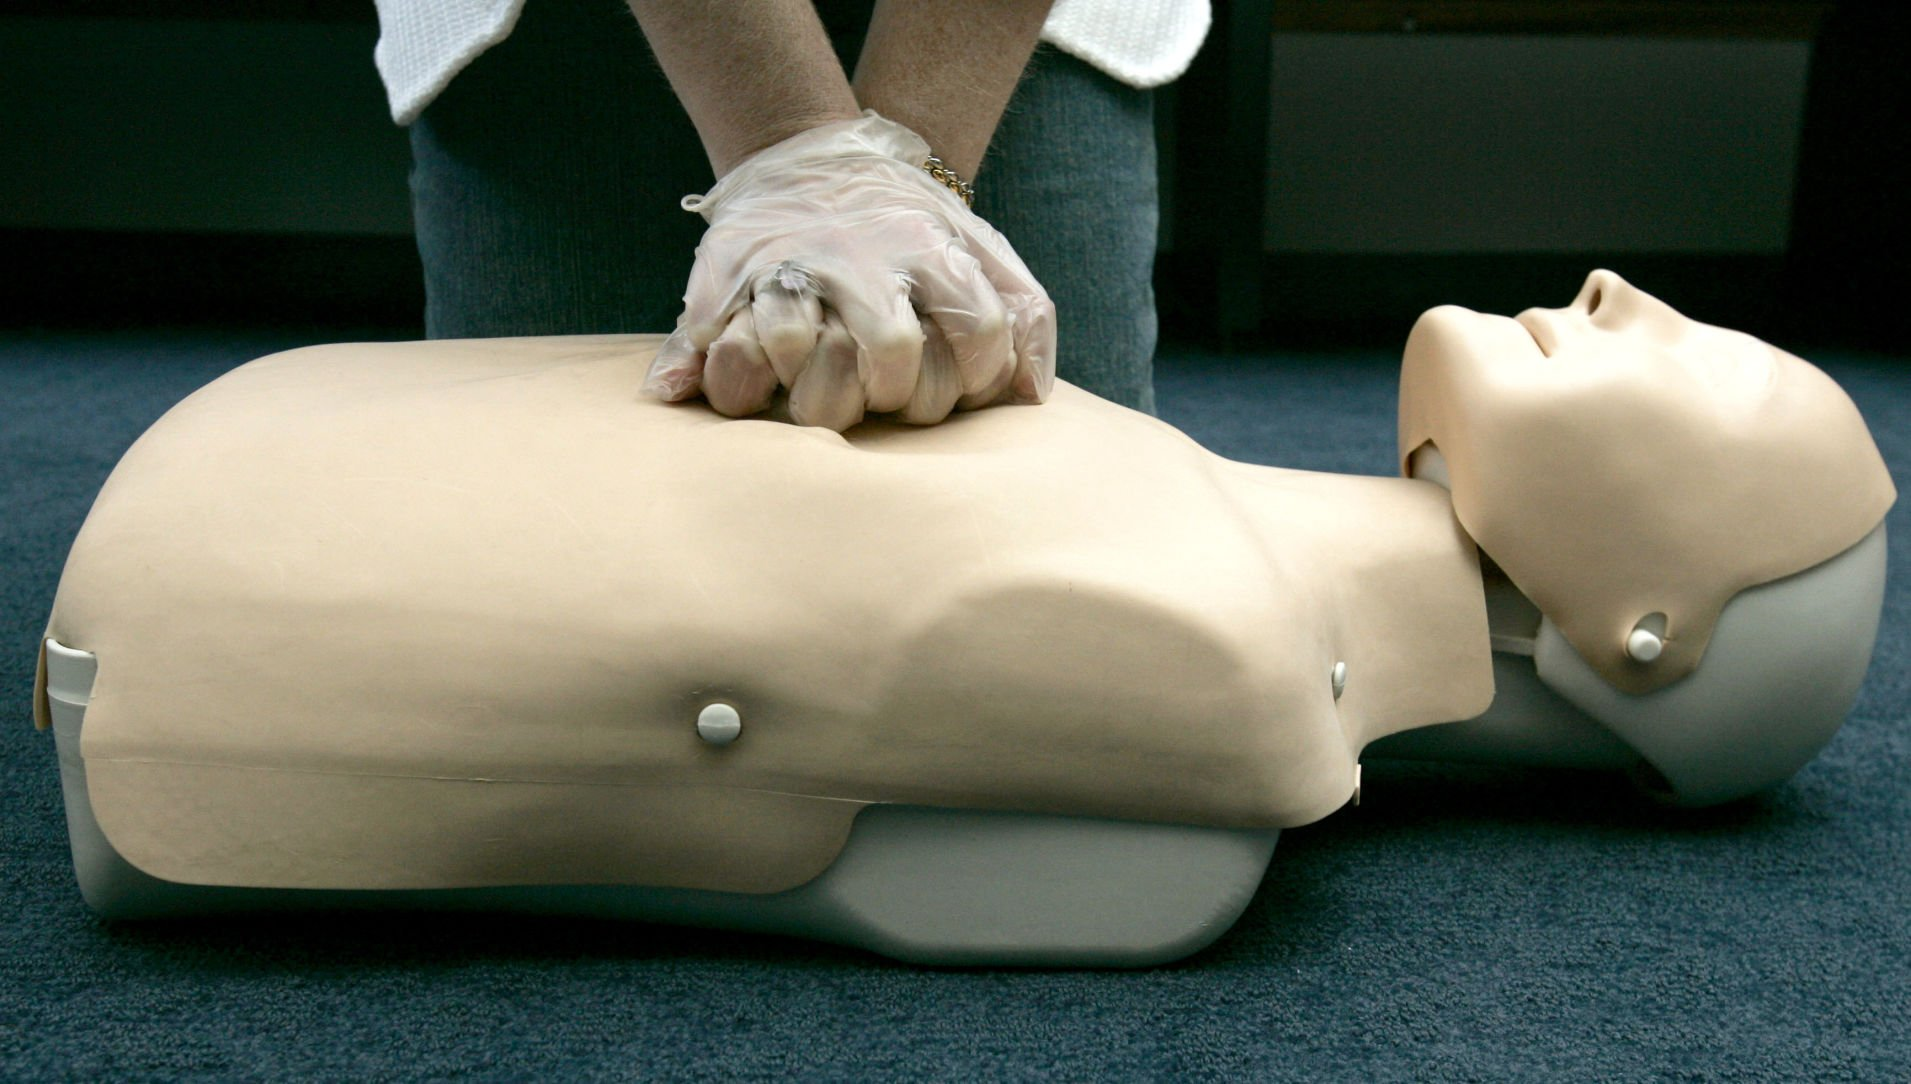 'Briana's Law' makes CPR training mandatory for NYC, state cops